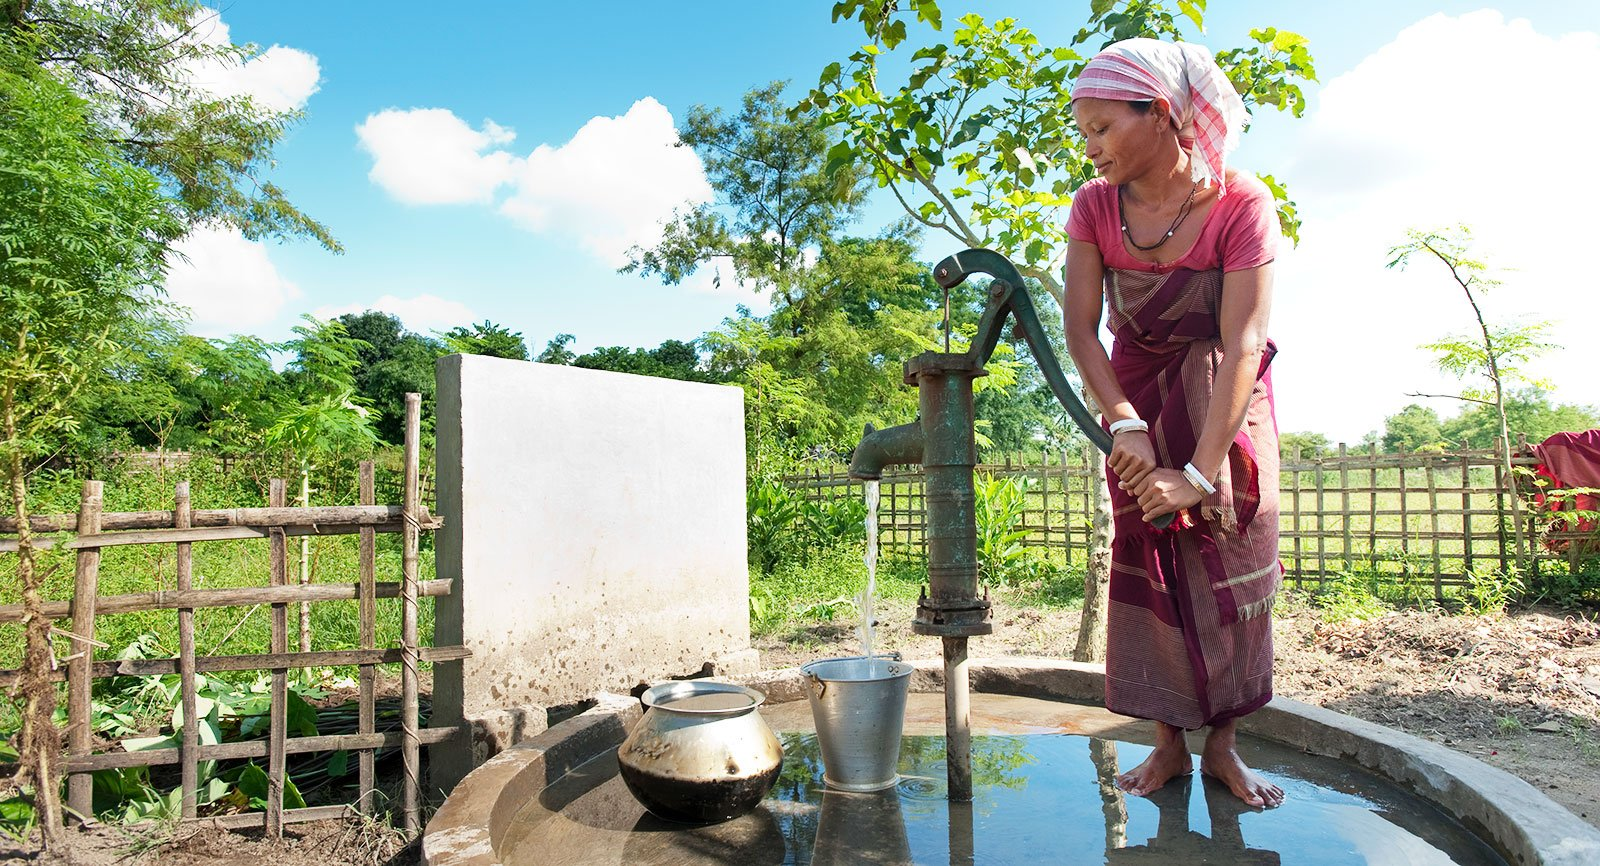 A woman gets clean water from a Jesus Well. India water crisis issues require practical water scarcity solutions to provide people with access to safe drinking water.